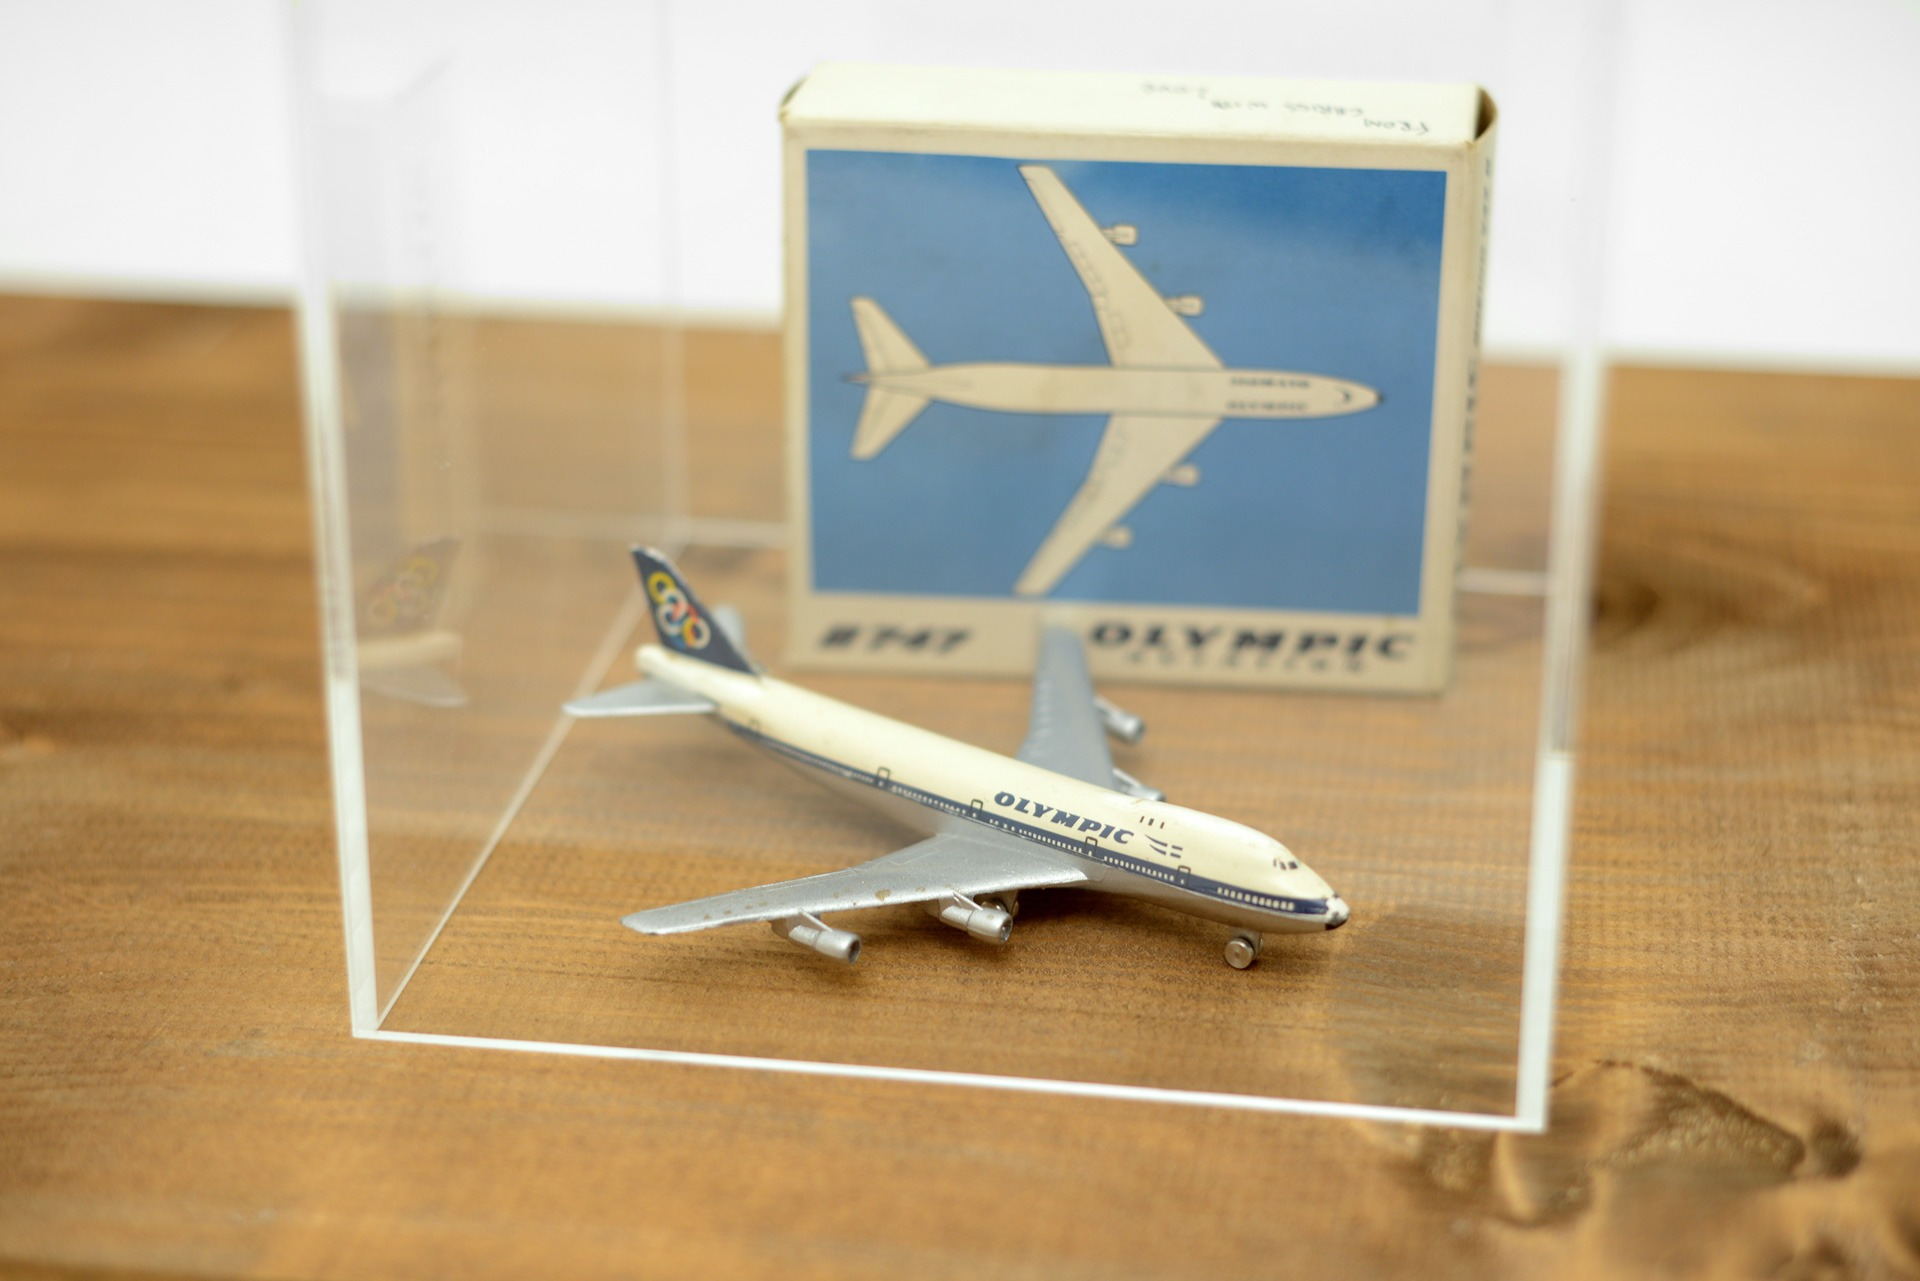 1990s Olympic Airways Boeing 747 diecast scale 1:600 aircraft model made in Germany by Schuco